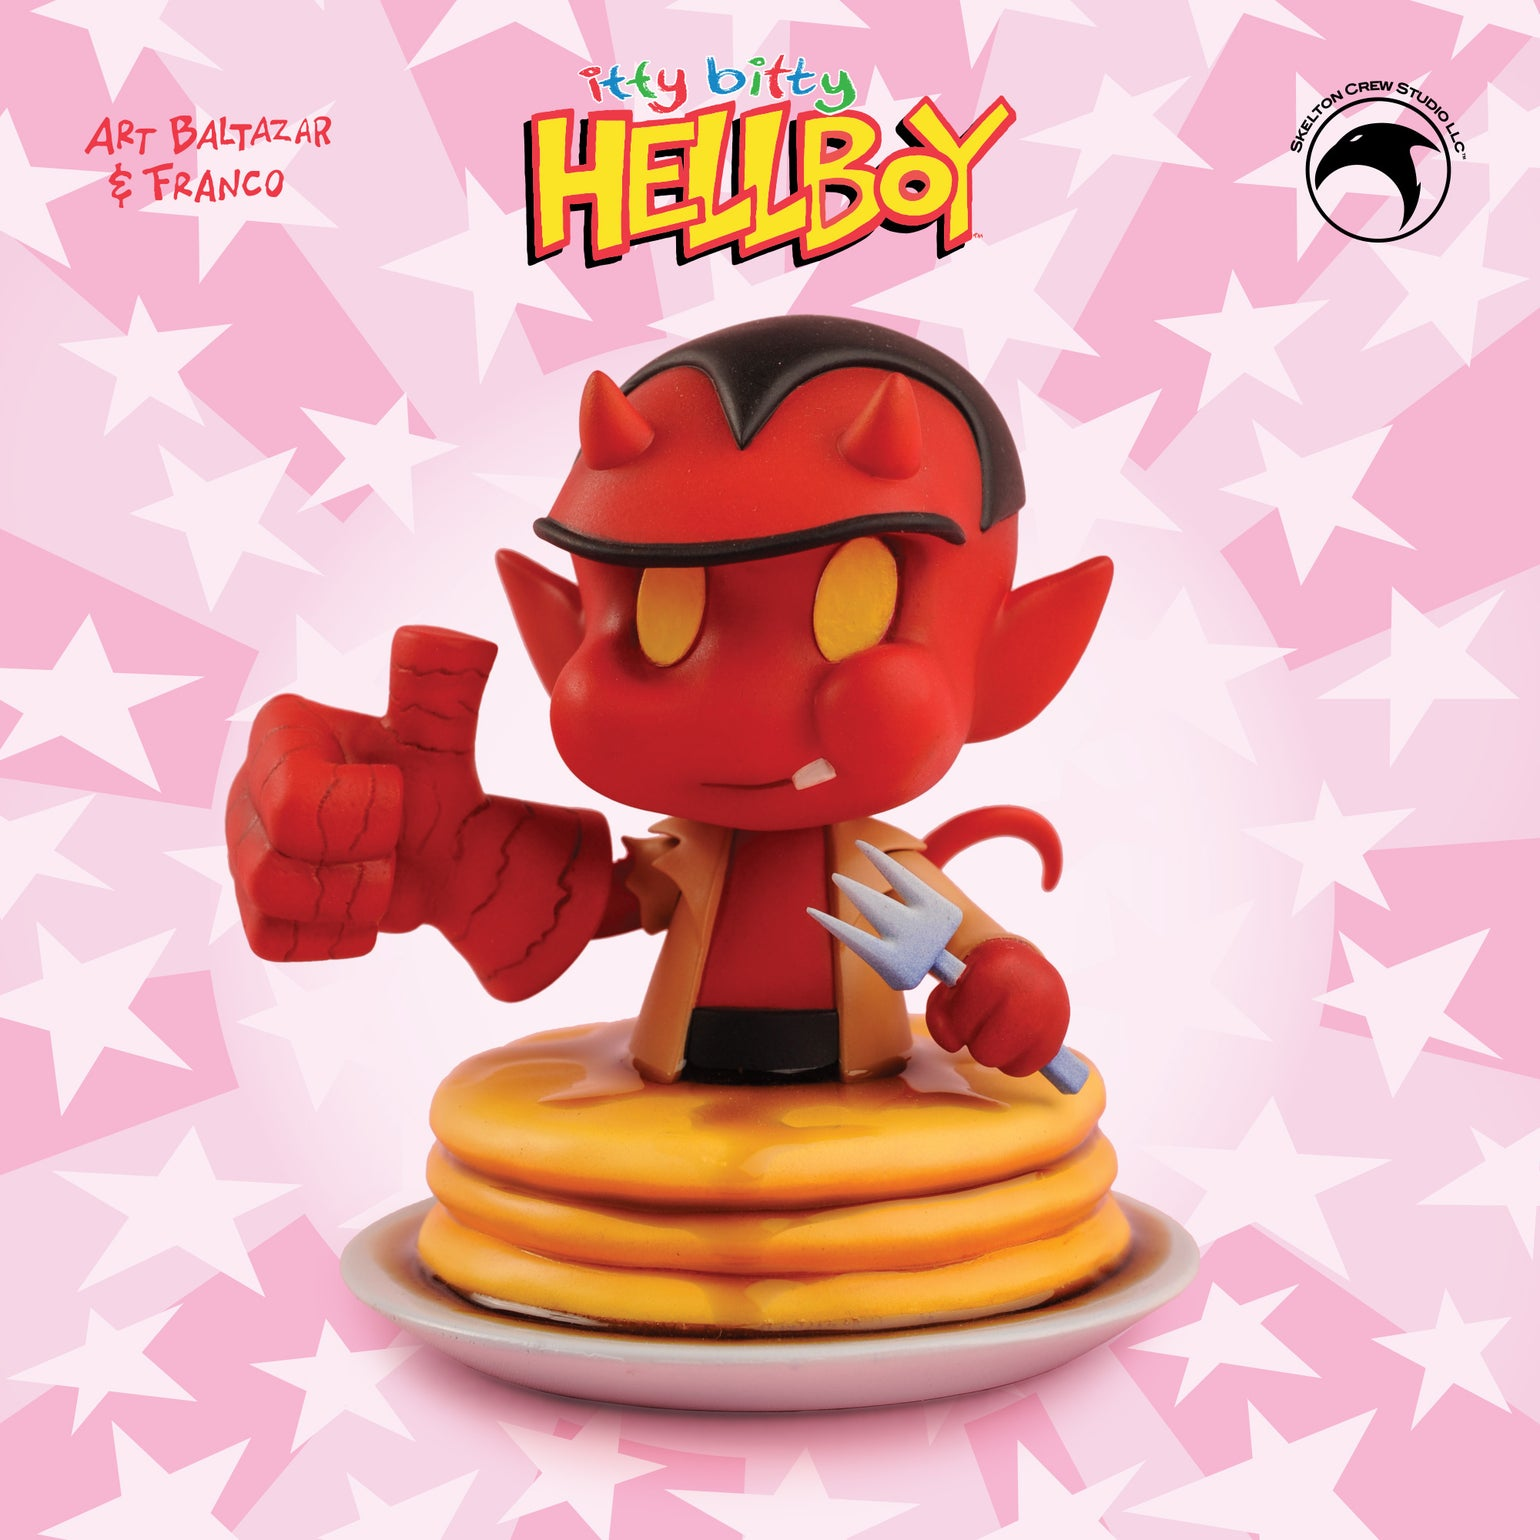 Image of Hellboy: Limited Edition itty bitty Hellboy statue! Less than 20 left!